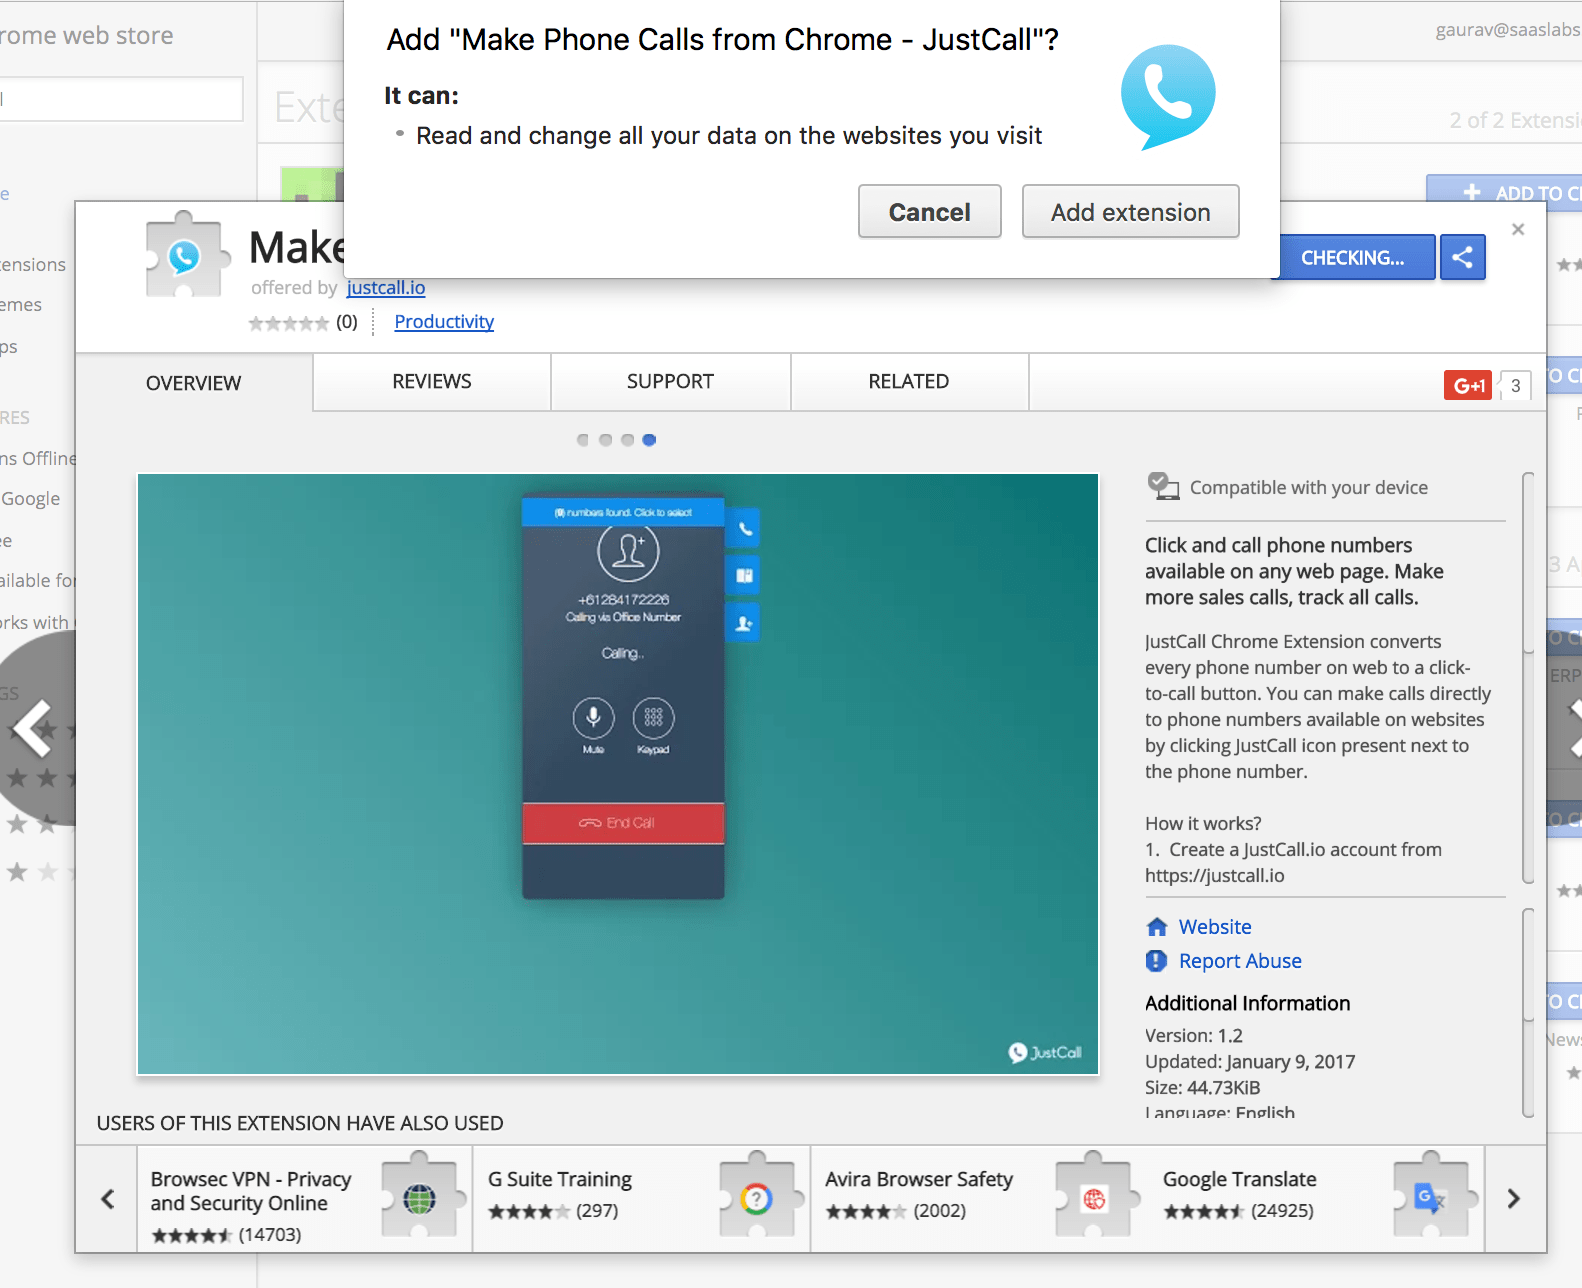 How to make sales calls directly from Google Chrome browser?